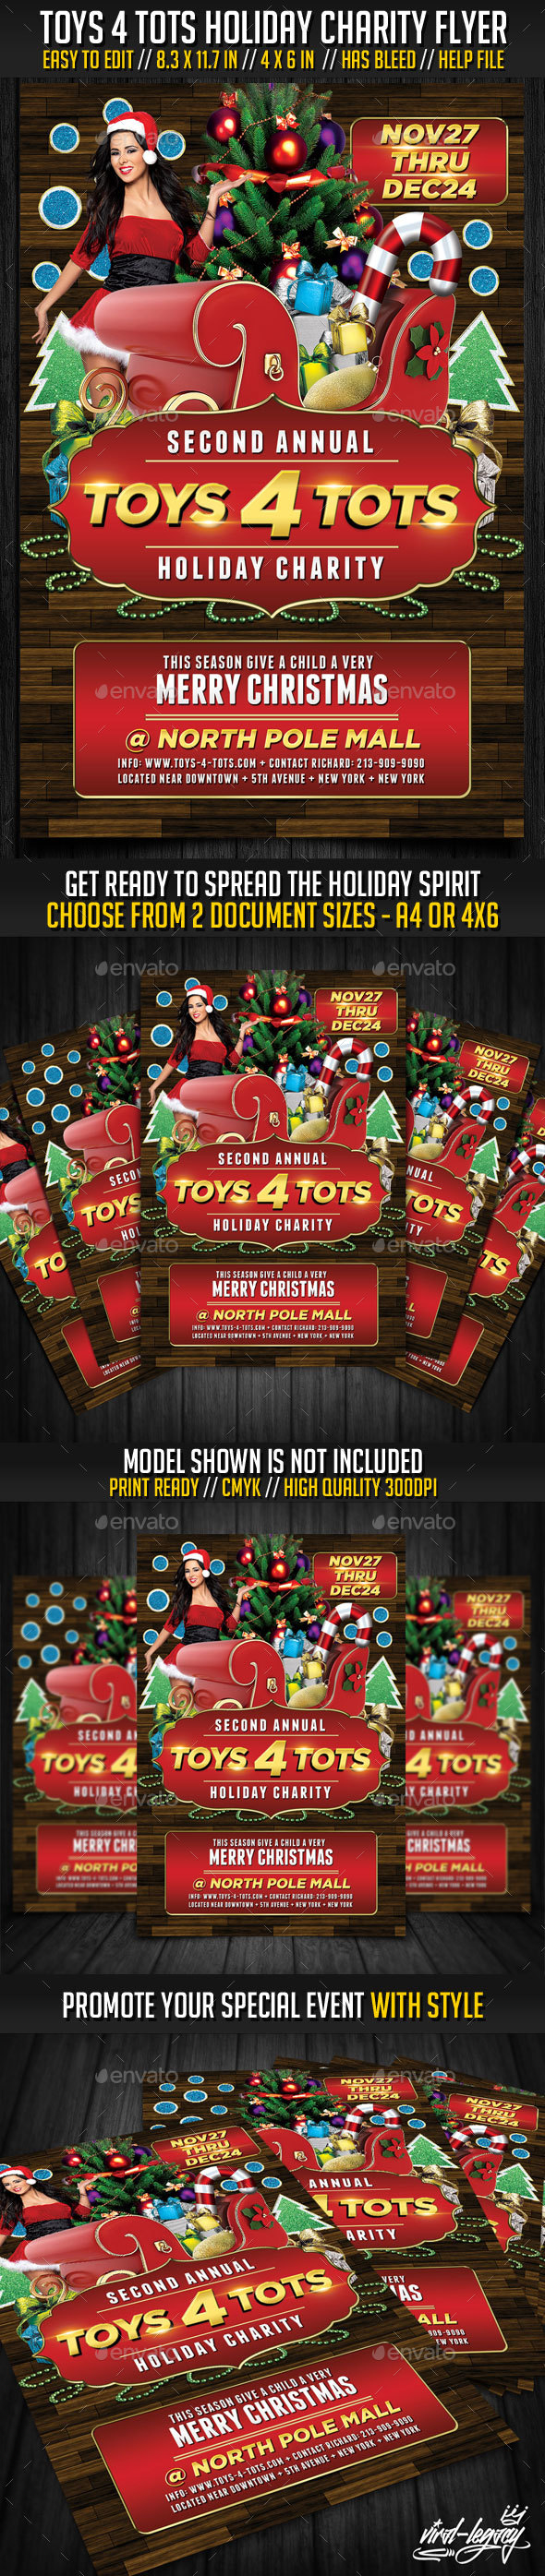 Toys For Tots Logo Flyer : Toys tots charity flyer v by viral legacy graphicriver